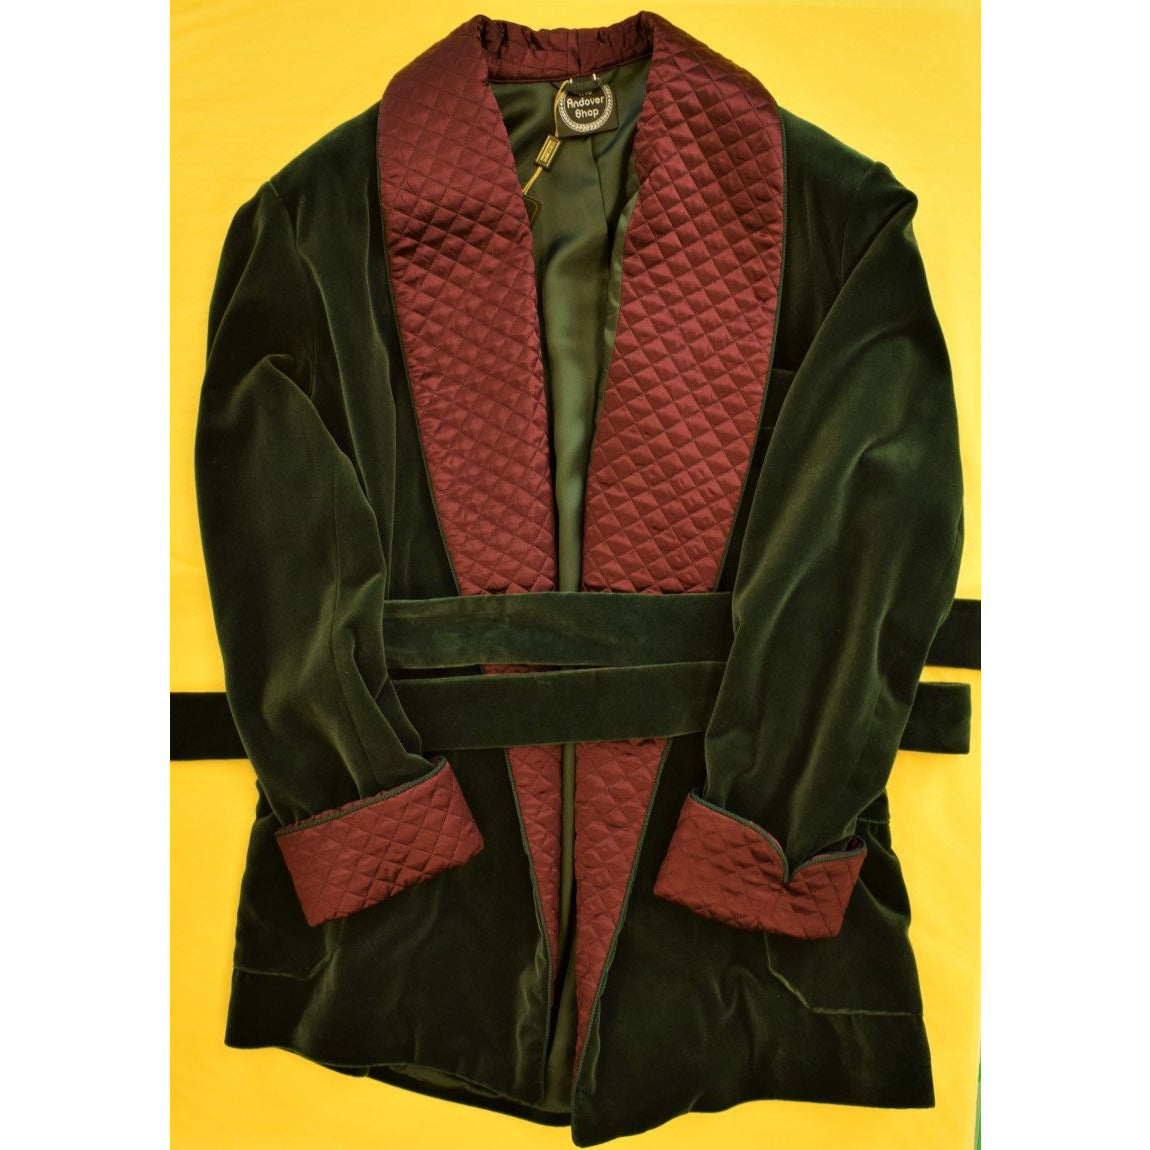 The Andover Shop Italian Hunter Green Velvet Smoking Jacket w/ Burgundy Trapunto Shawl Collar Sz: XL""